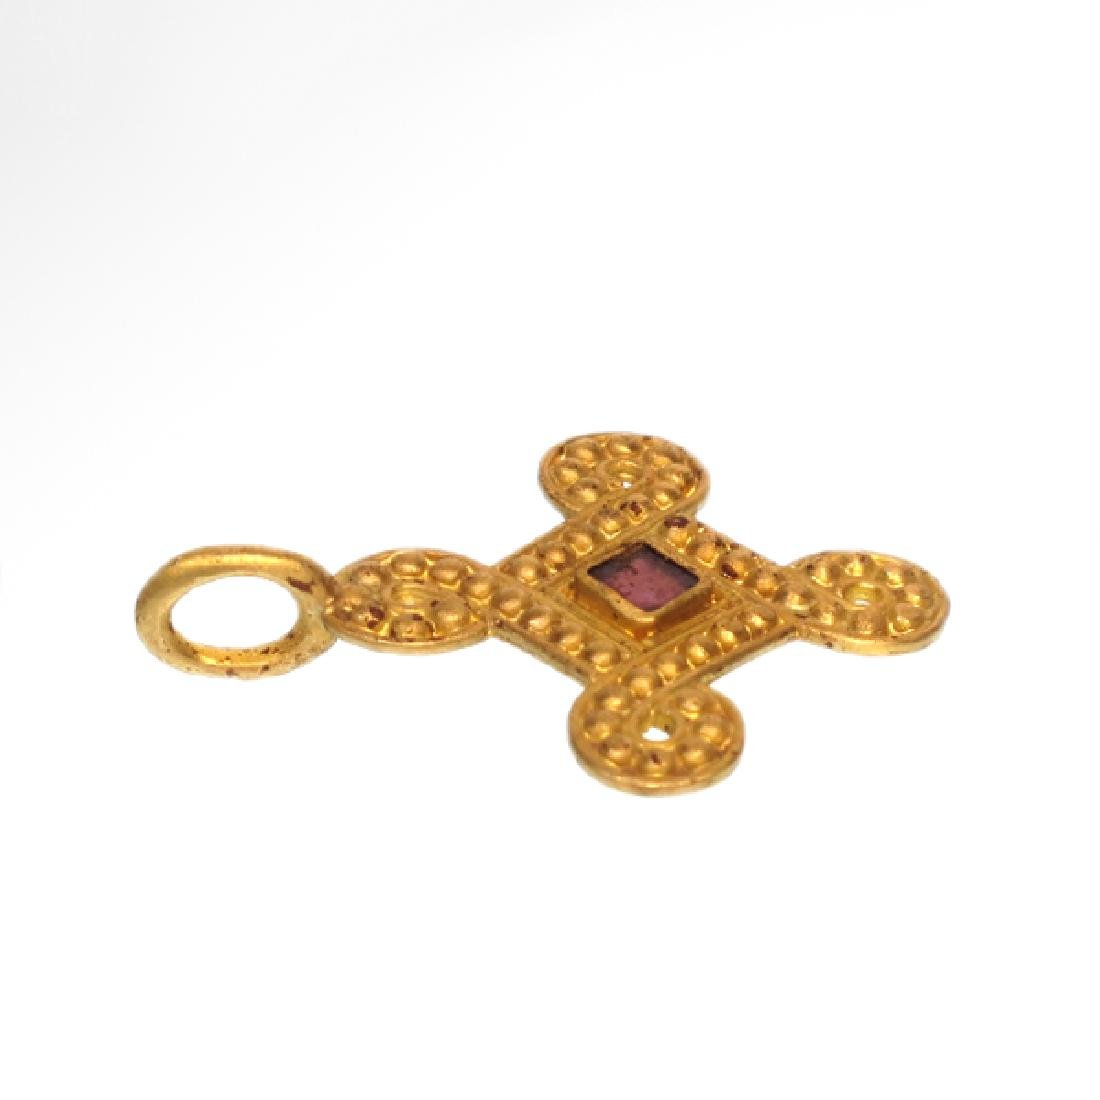 Viking Entwined Gold Cross Pendant with Garnet - 2